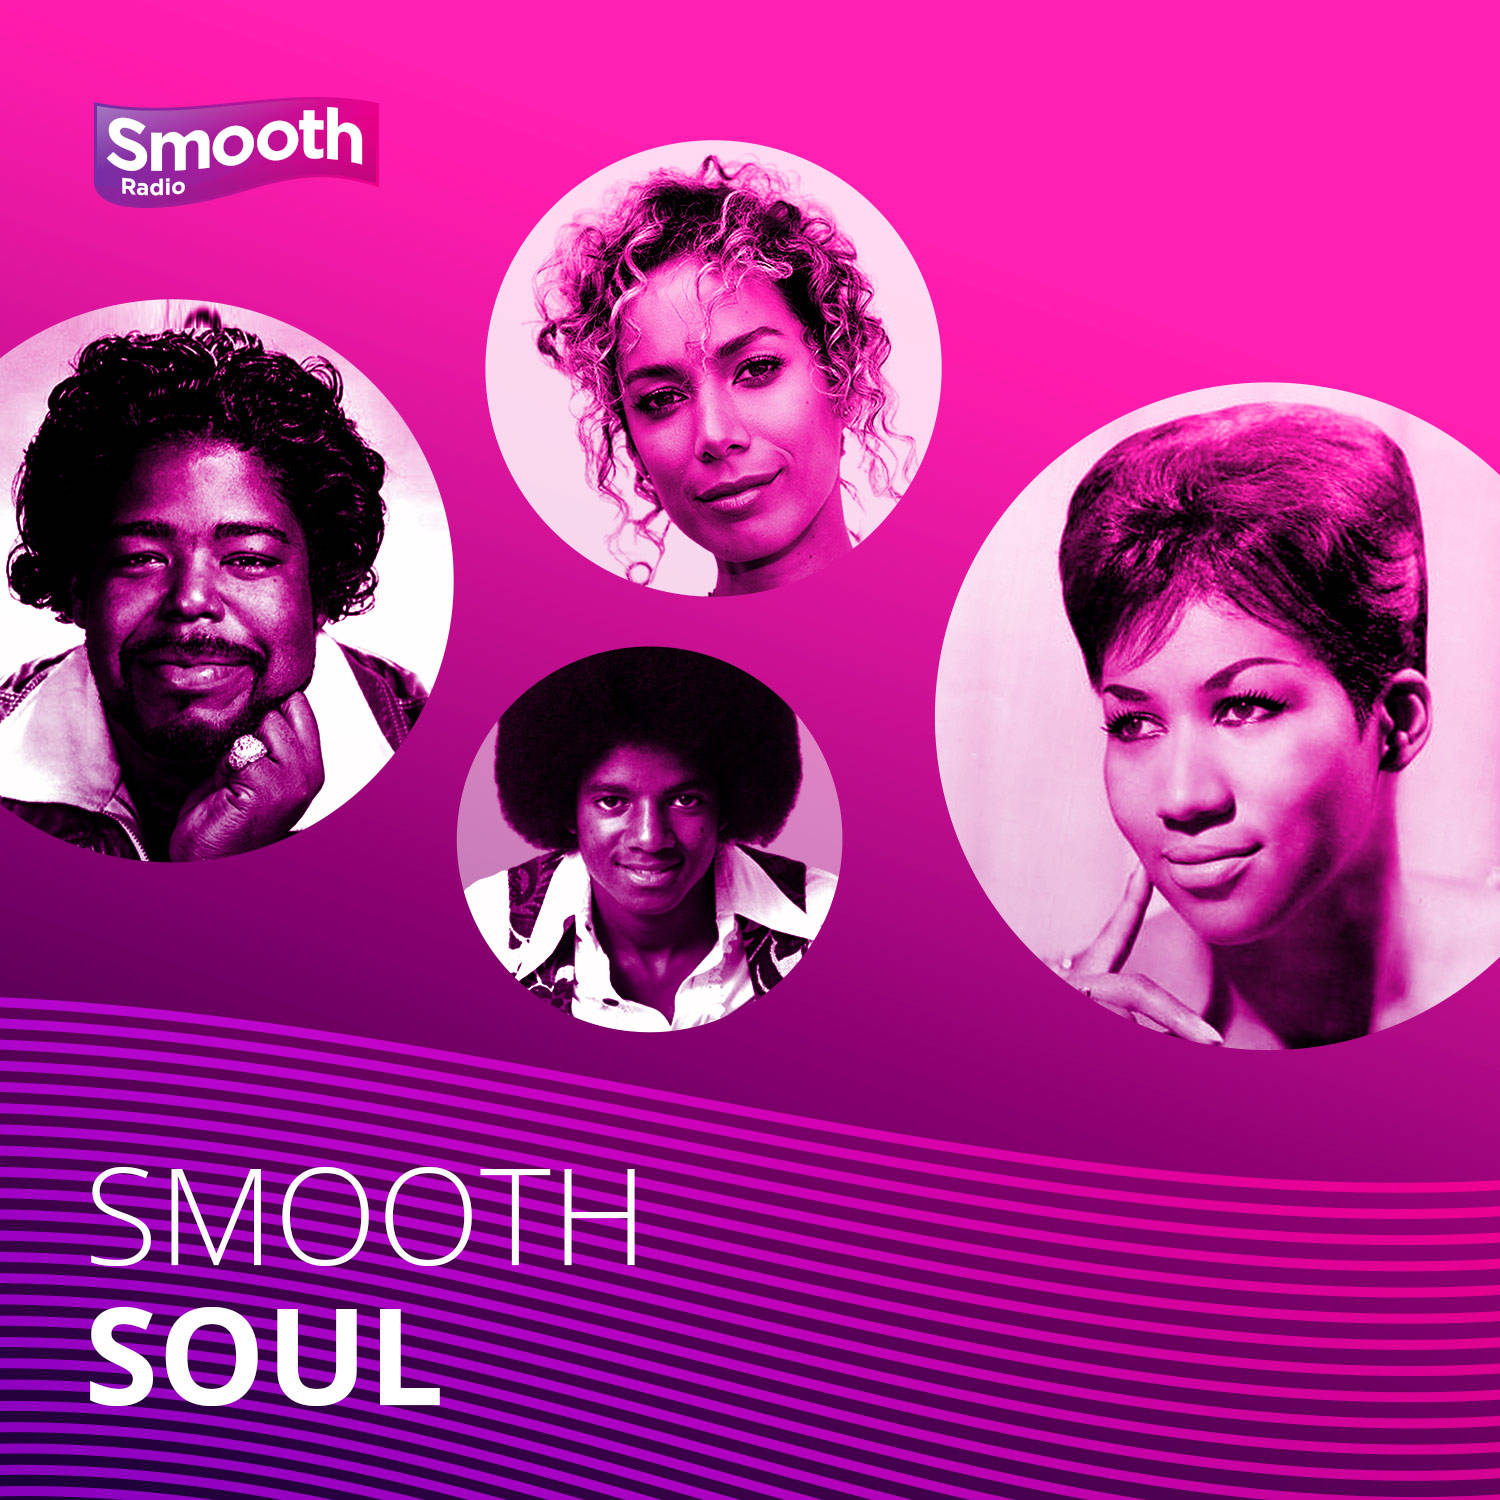 Smooth Soul image